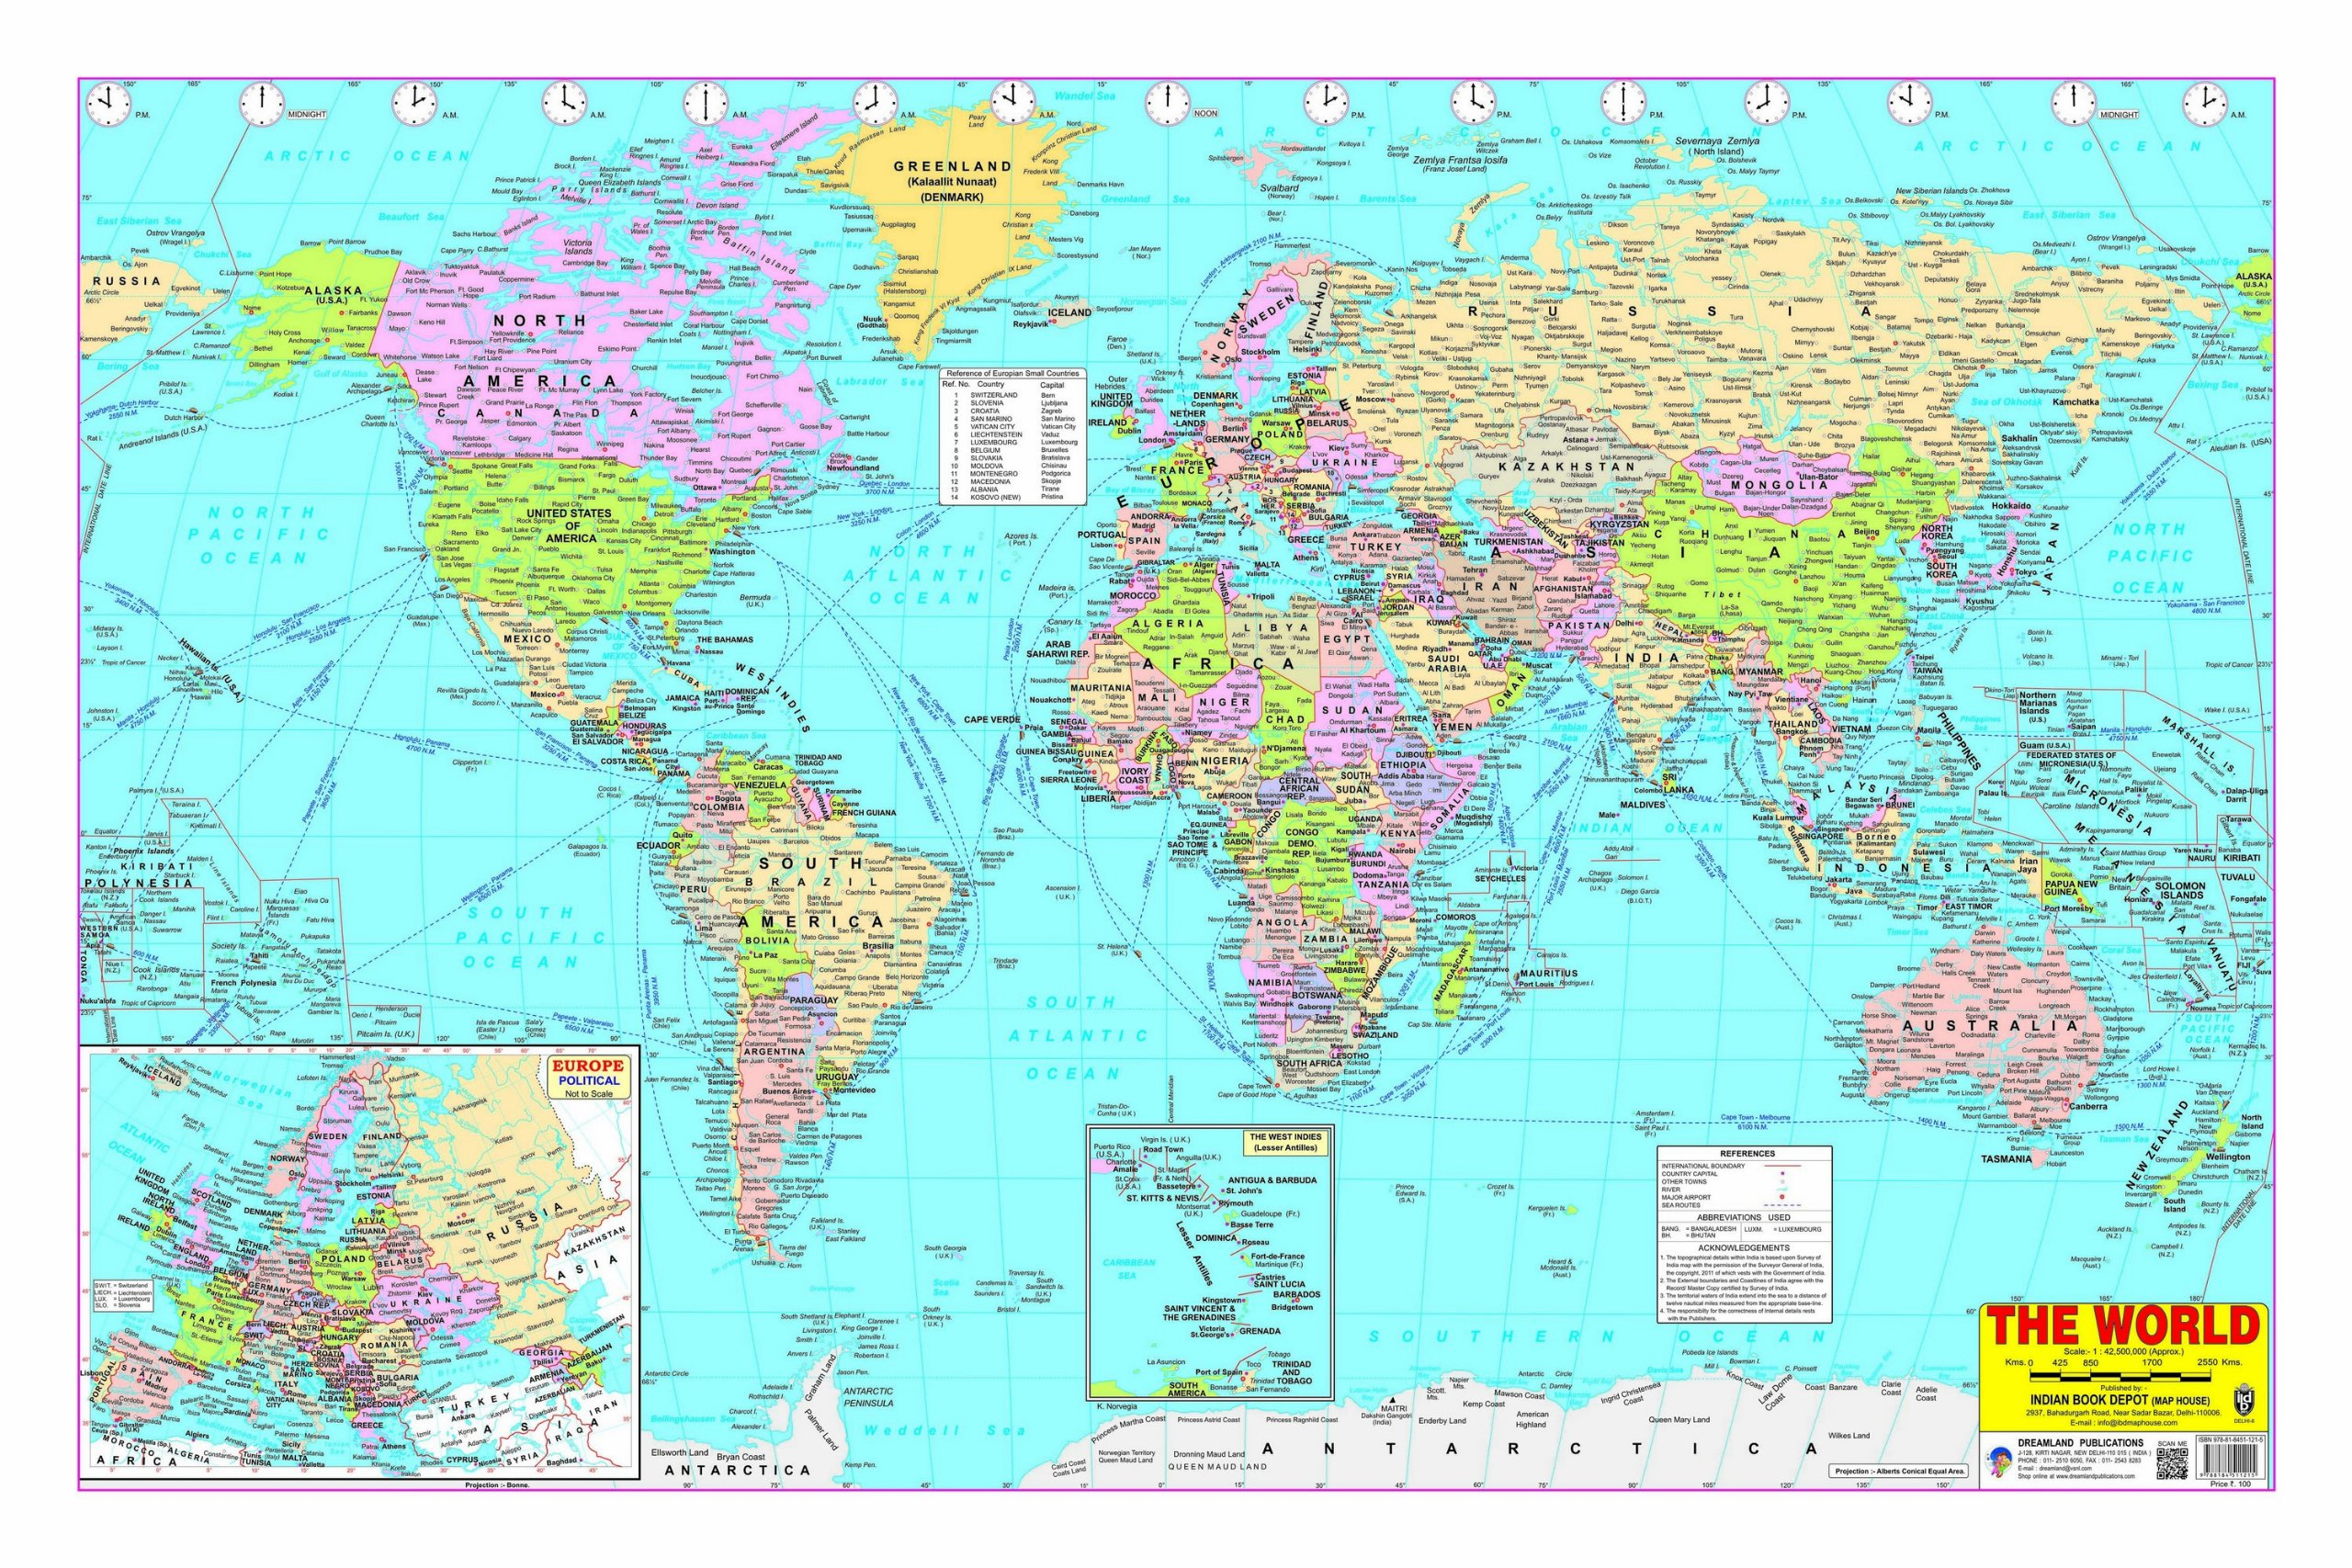 Buy World Map Book Online at Low Prices in India | World Map Reviews ...